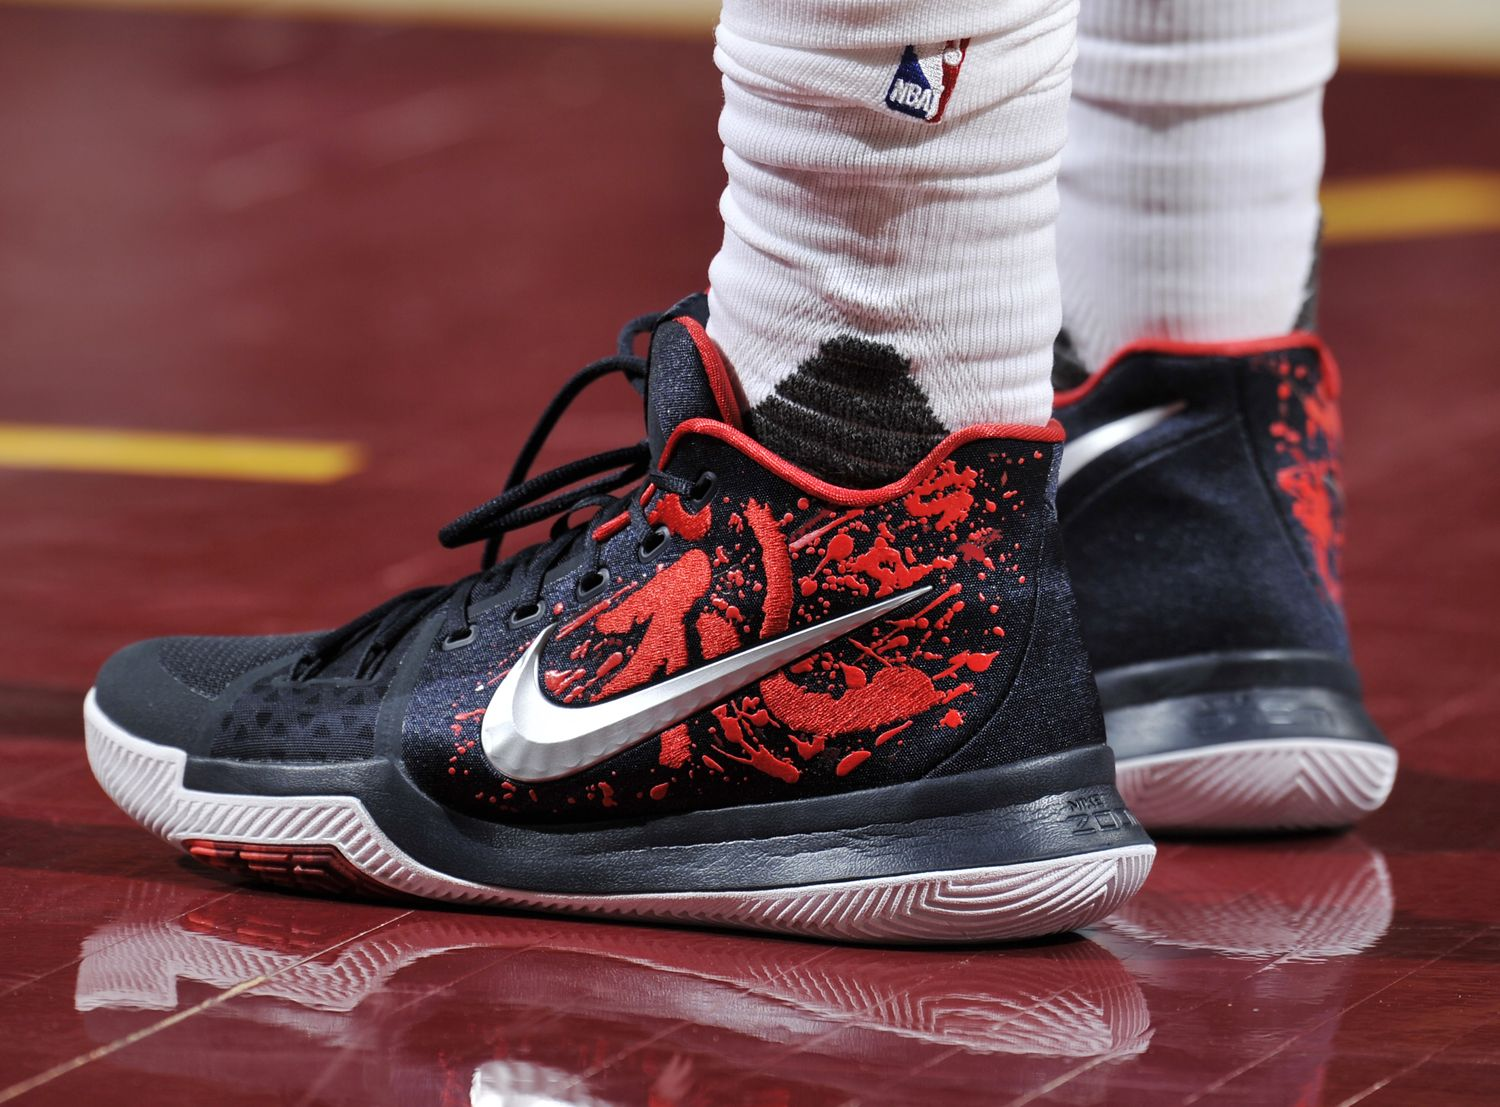 kd 6 shirts 2014 kyrie irving shoes